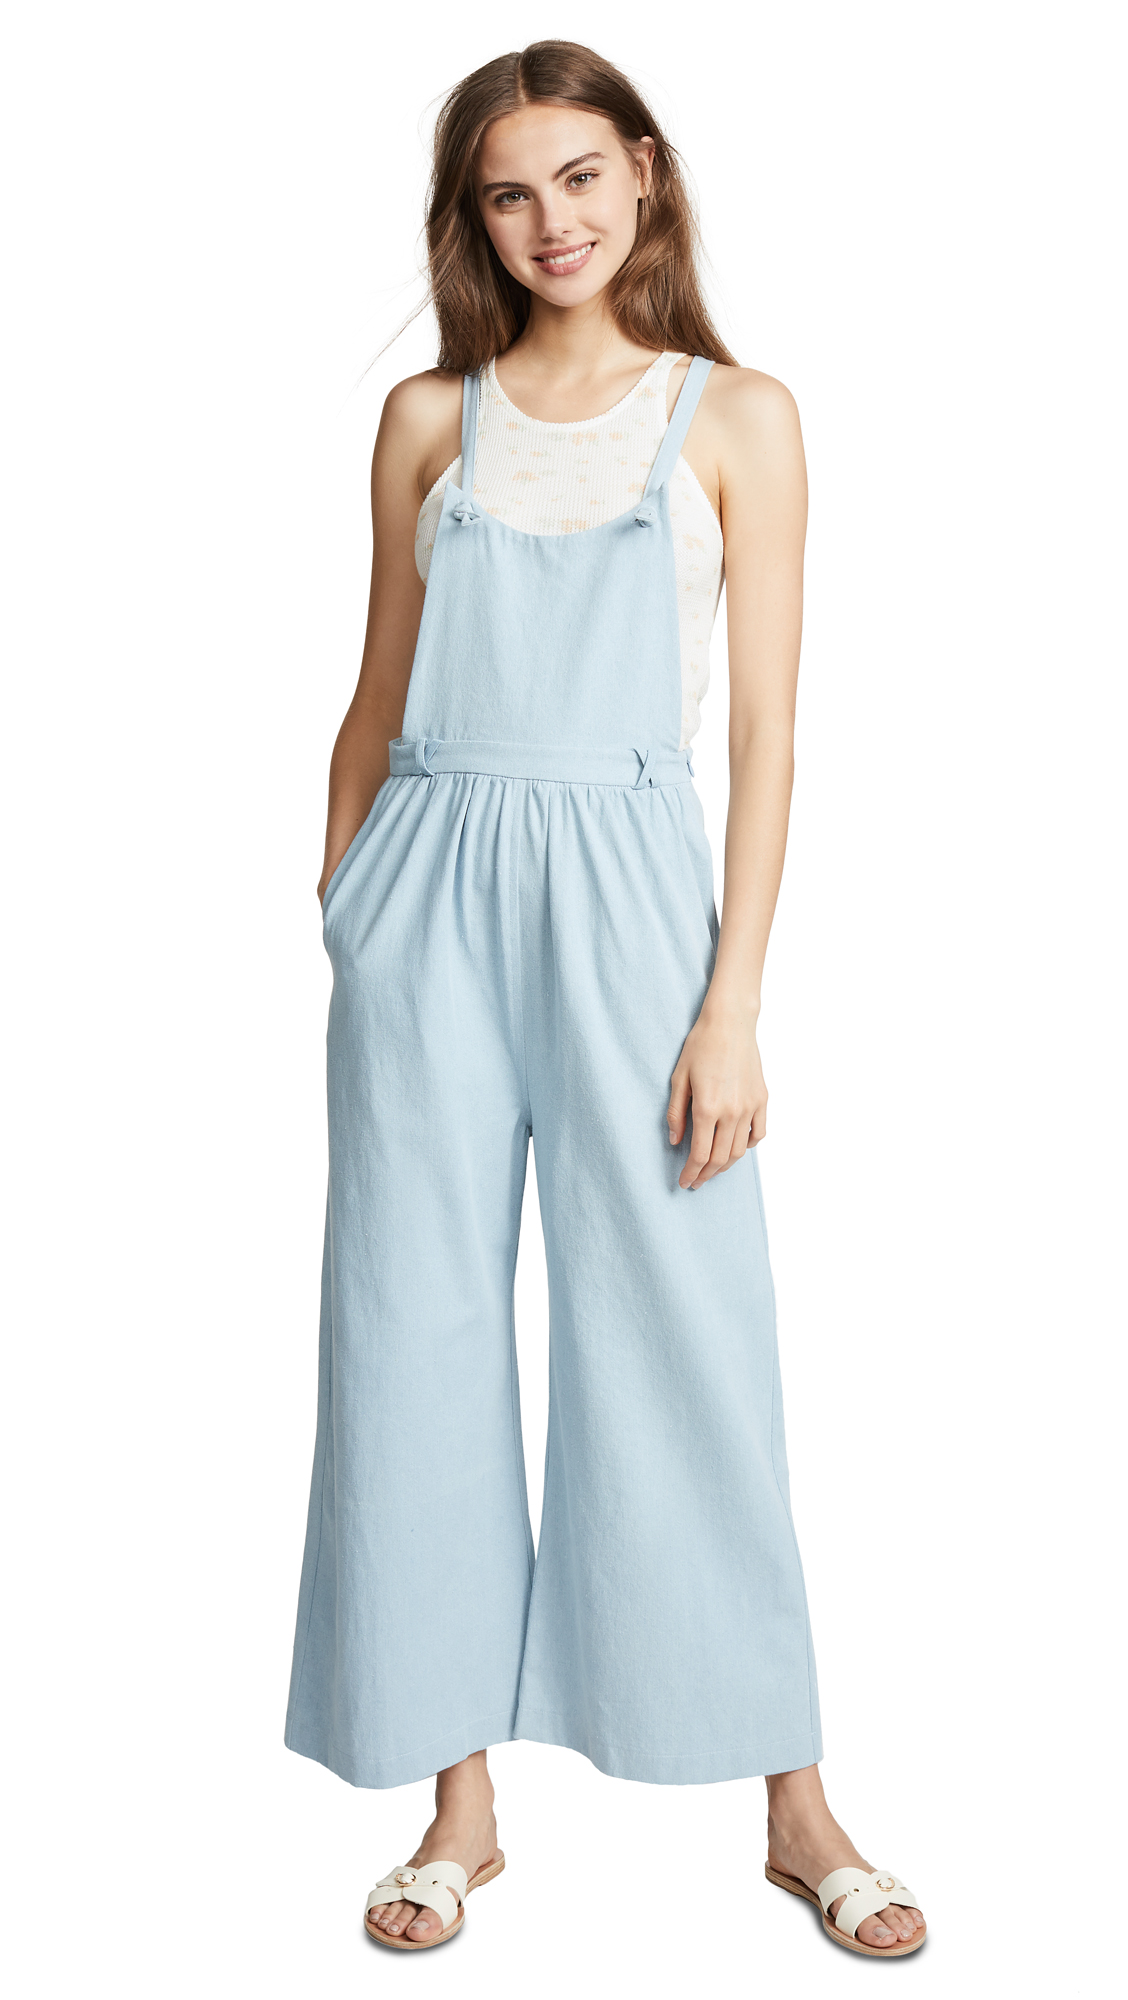 Loup Kate Knot Overalls In Light Indigo